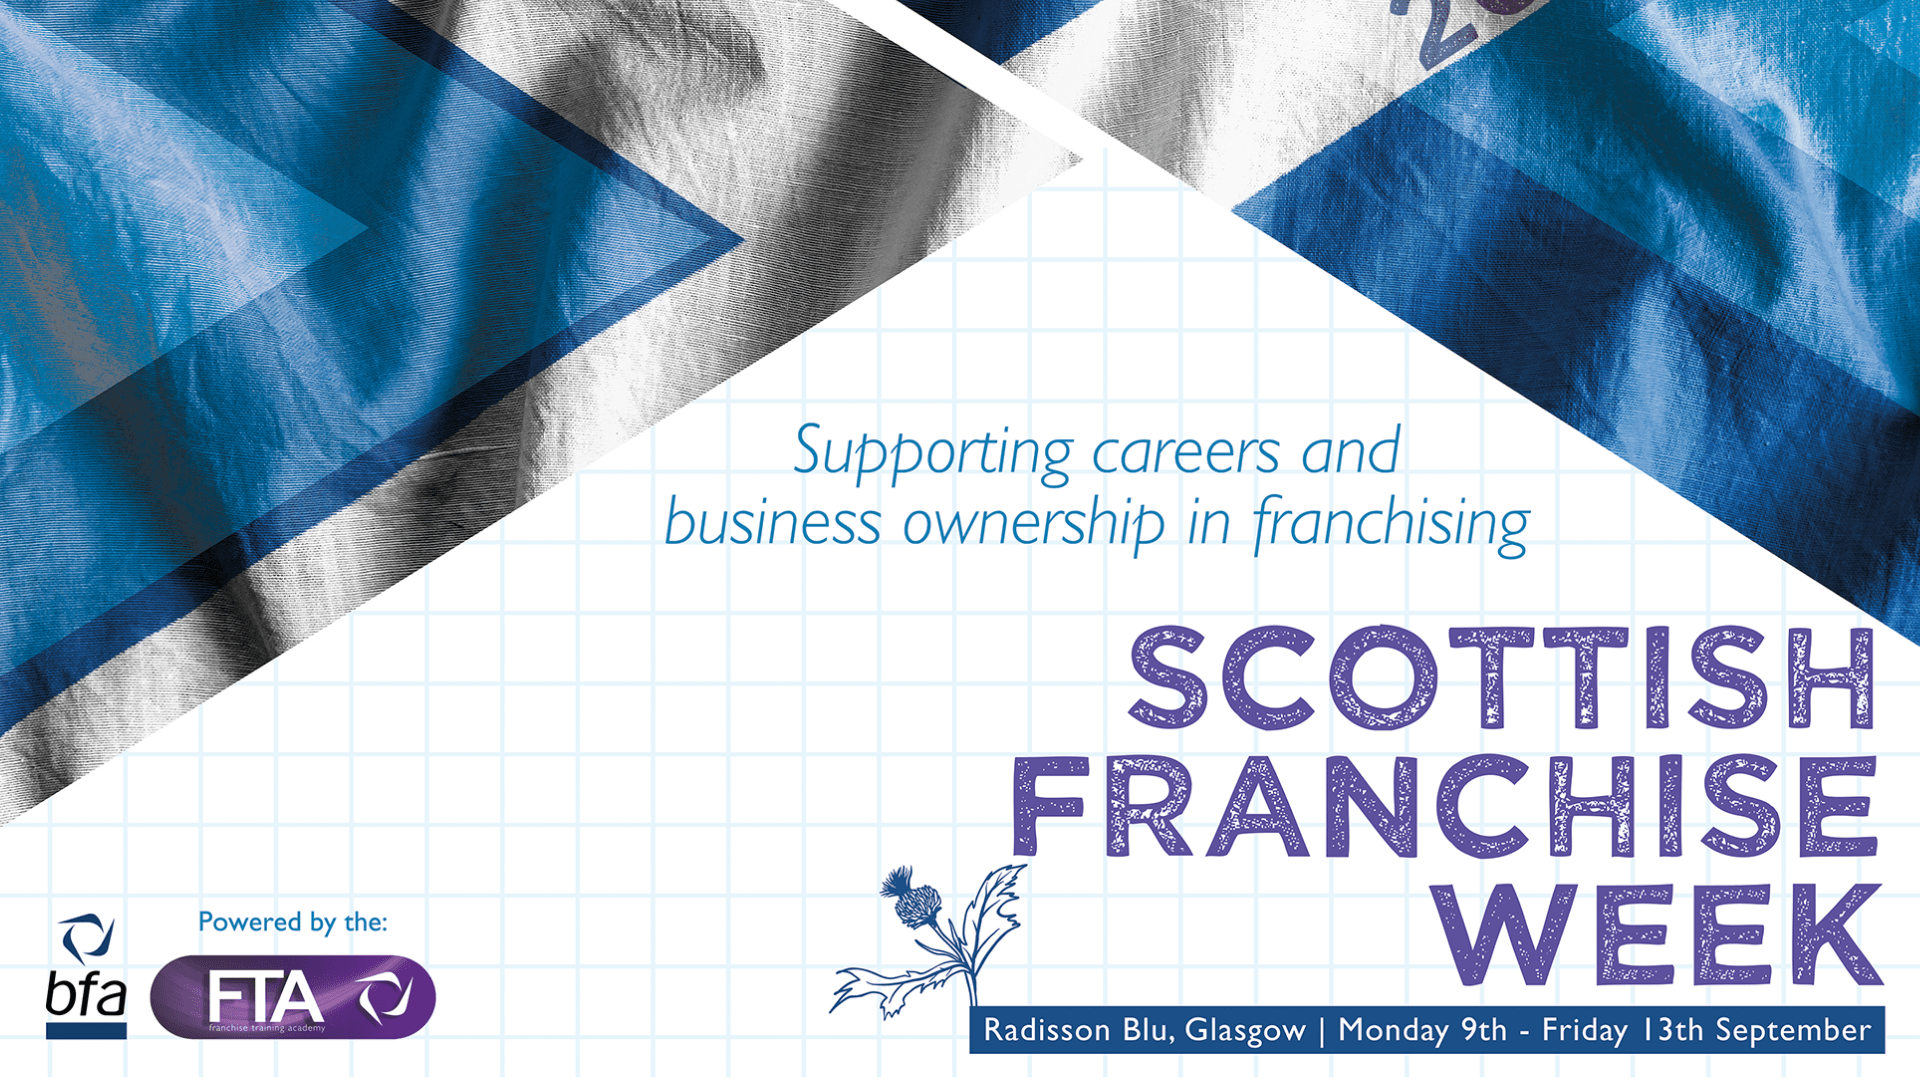 The British Franchise Association vows to help make franchising a £1bn industry in Scotland by 2021